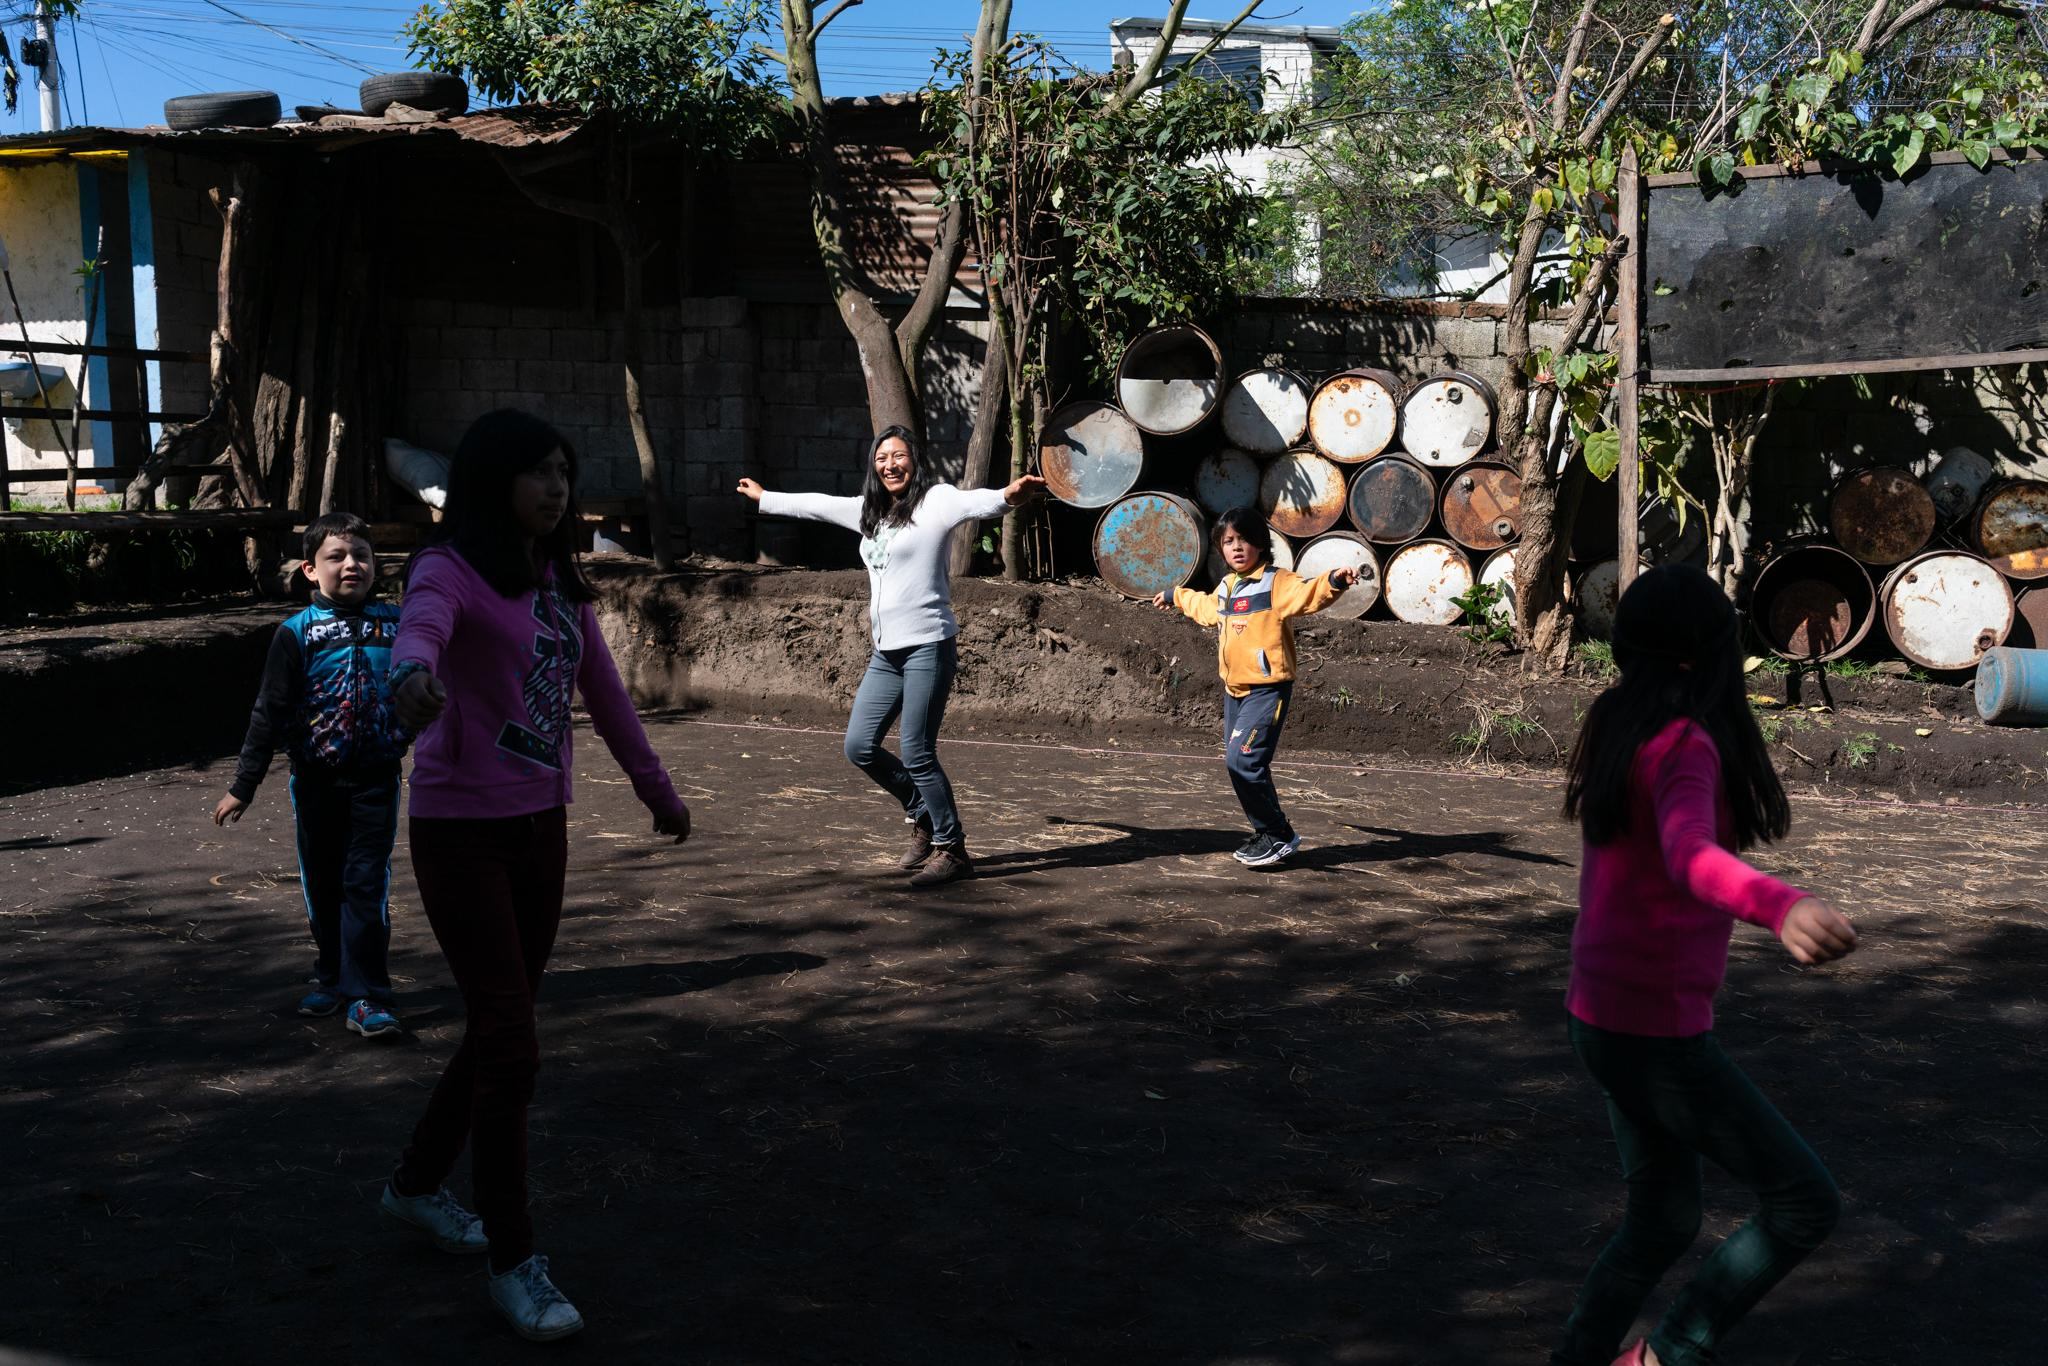 Dina Taco (39) leads a family activity every morning, in which everyone dances and exercises before starting their daily activities. Grandparents (Dina's parents) also participate.Jasid Taquiri Aguayo (7) and Suri Laina Aguayo (10) are elementary school students of the Yachay Wasi Intercultural Bilingual Community School. Located south of Quito in Ecuador. They live with her sister Arelí (14), her mother Dina Taco (39) and her father Juan Andrés Aguayo (34). They live in a big house, their grandparents are their neighbors, and they have a big garden full of plants and some trees. Her parents say that at the beginning of the quarantine it was more fun for the children, but nowadays they miss going to school and sharing with their classmates. Dina, the mother, studies Infant Education at a distance, this has given her tools to closely accompany her children's studies during the confinement. She has created routines for children to make better use of time; at 8:30 they do exercises and dance in the patio, until 11:30 they do their homework, then they play and they also collaborate in certain household responsibilities. They are a family with limited financial resources, the Covid19 has left the two parents without work, however, they can lean on their grandparents. They are a family with a broad vision of social work. Photographer: Ana Maria Buitron. Quito, Ecuador. Dina Taco (39) lidera todas las mañanas una actividad famliar, en la que todos bailan y hacen ejercicios antes de empezar sus actividades cotidianas. Hacen parte de esto también los abuelos (padres de Dina). Jasid Taquiri Aguayo (7) y Suri Laina Aguayo (10) son estudiantes de primaria de la Escuela Comunitaria Intercultural Bilingüe Yachay Wasi. Ubicada al sur de Quito en Ecuador. Viven con su hermana Arelí (14), su madre Dina Taco (39) y su padre Juan Andrés Aguayo (34). Viven en una casa grande, sus abuelos son sus vecinos y tienen un jardín grande lleno de planta y algunos árboles. Sus